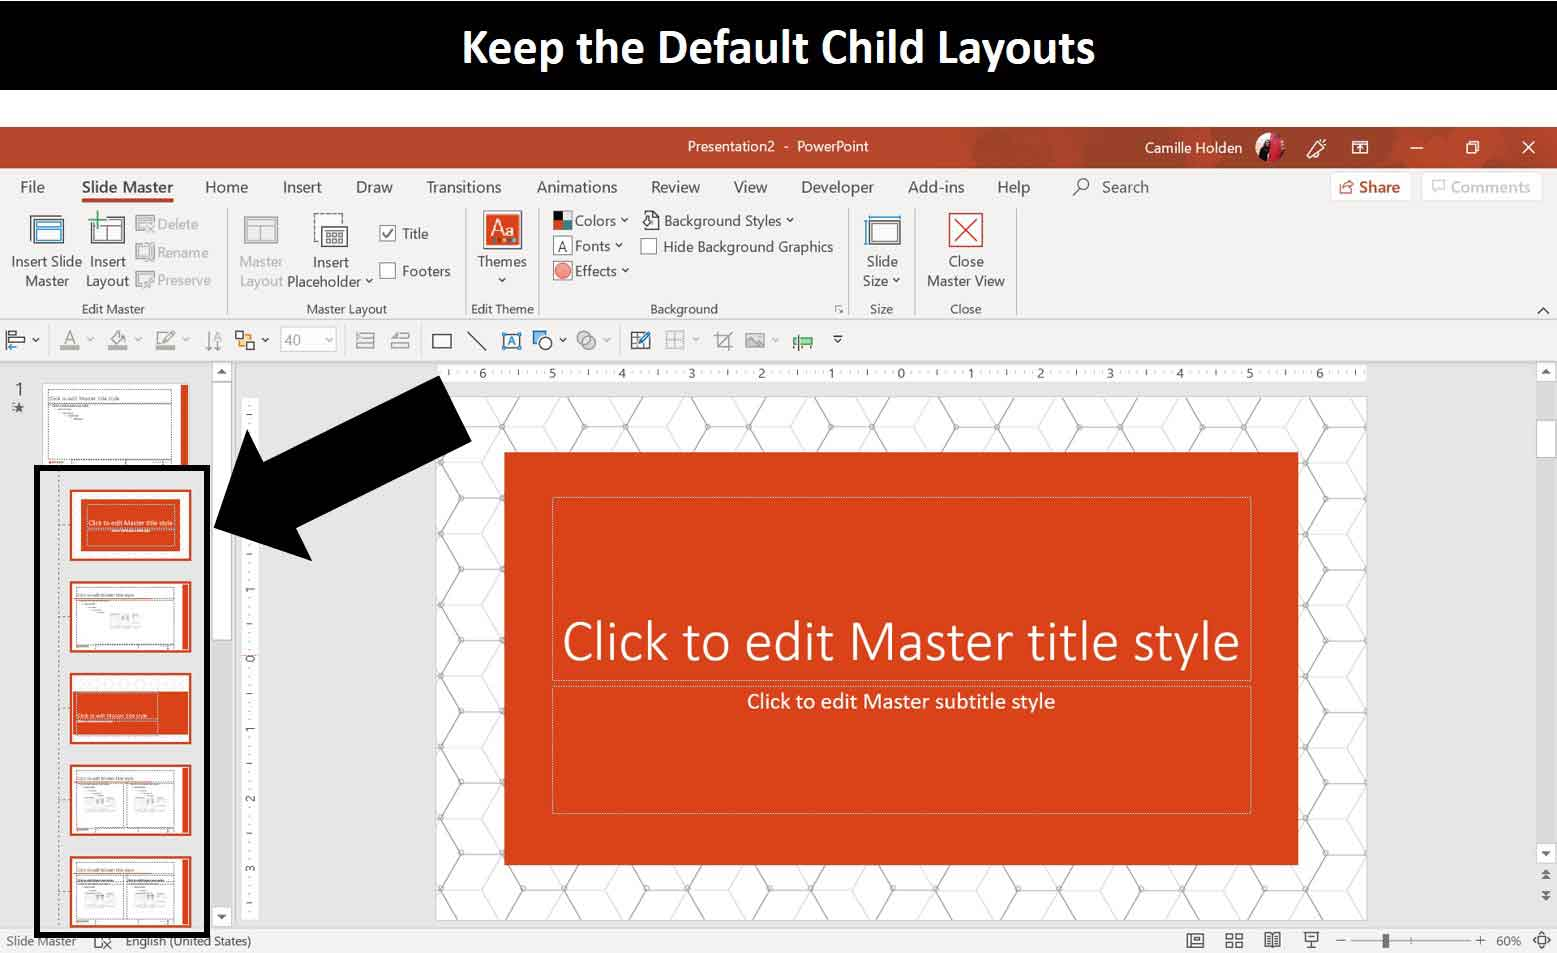 Don't delete the child slide layouts on your slide master if you are saving your presentation as a template